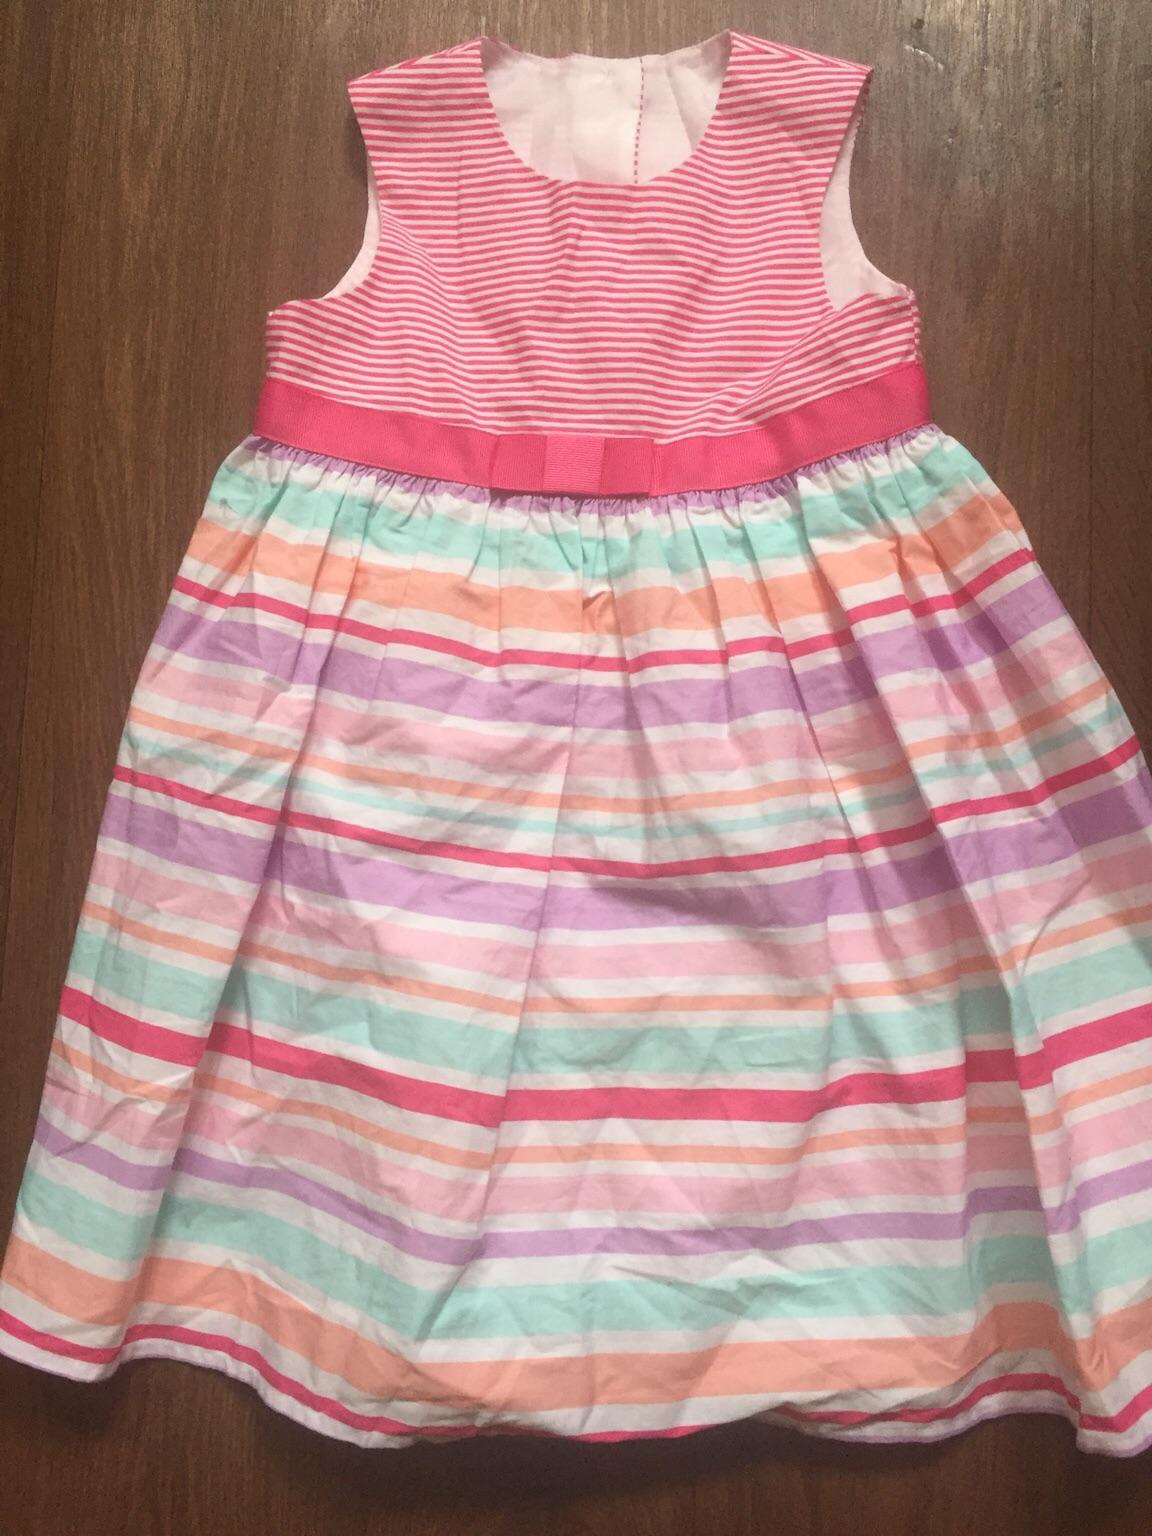 8dfbf31e069ae Girls 18,24 month summer spring dress in HD1 Kirklees for £0.50 for sale -  Shpock